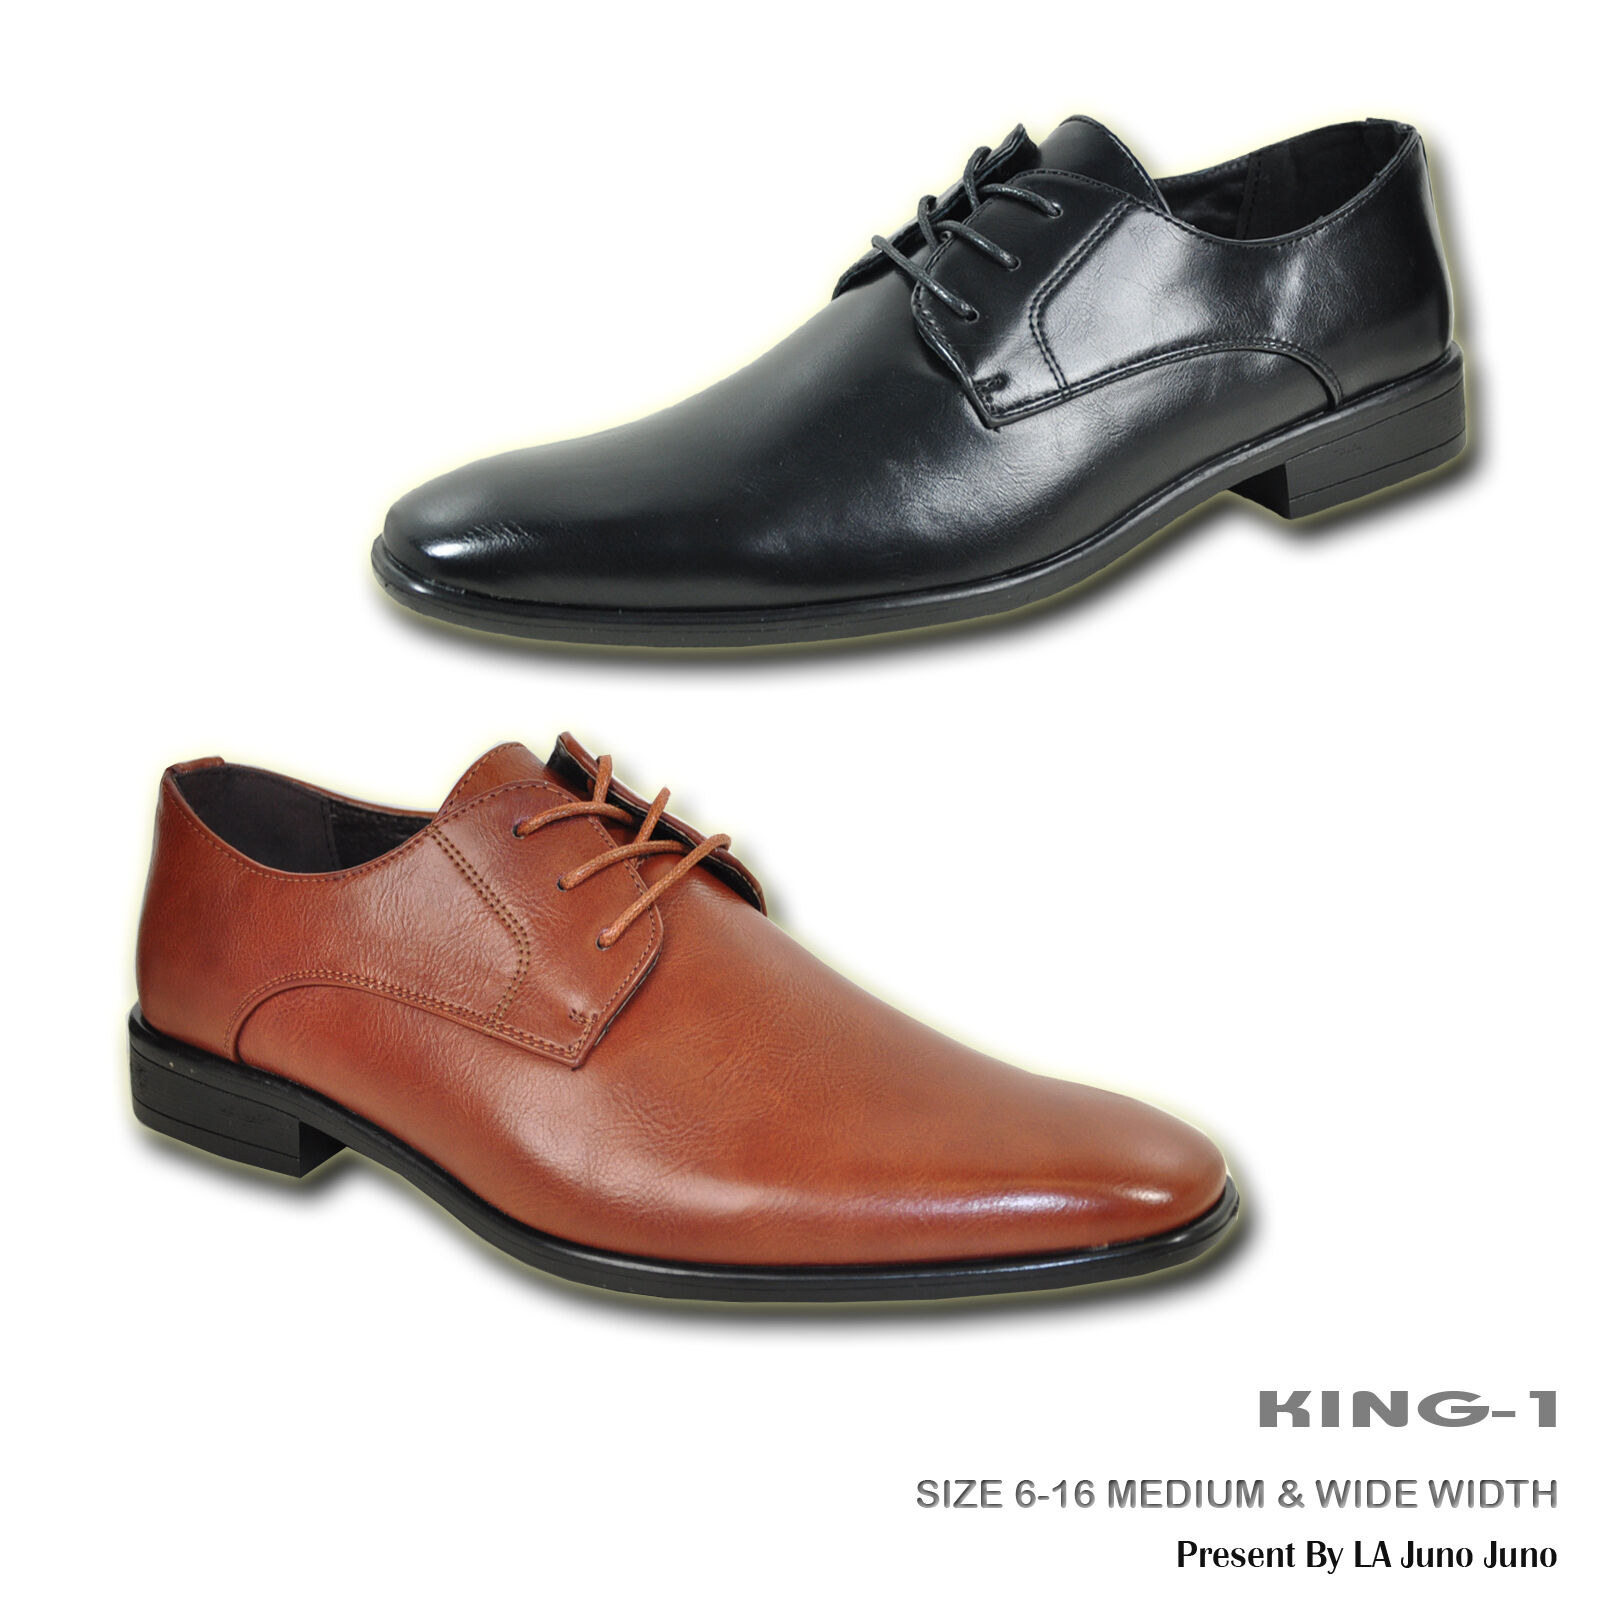 BRAVO Men Dress shoes KING-1 Classic Oxford with Leather Lining